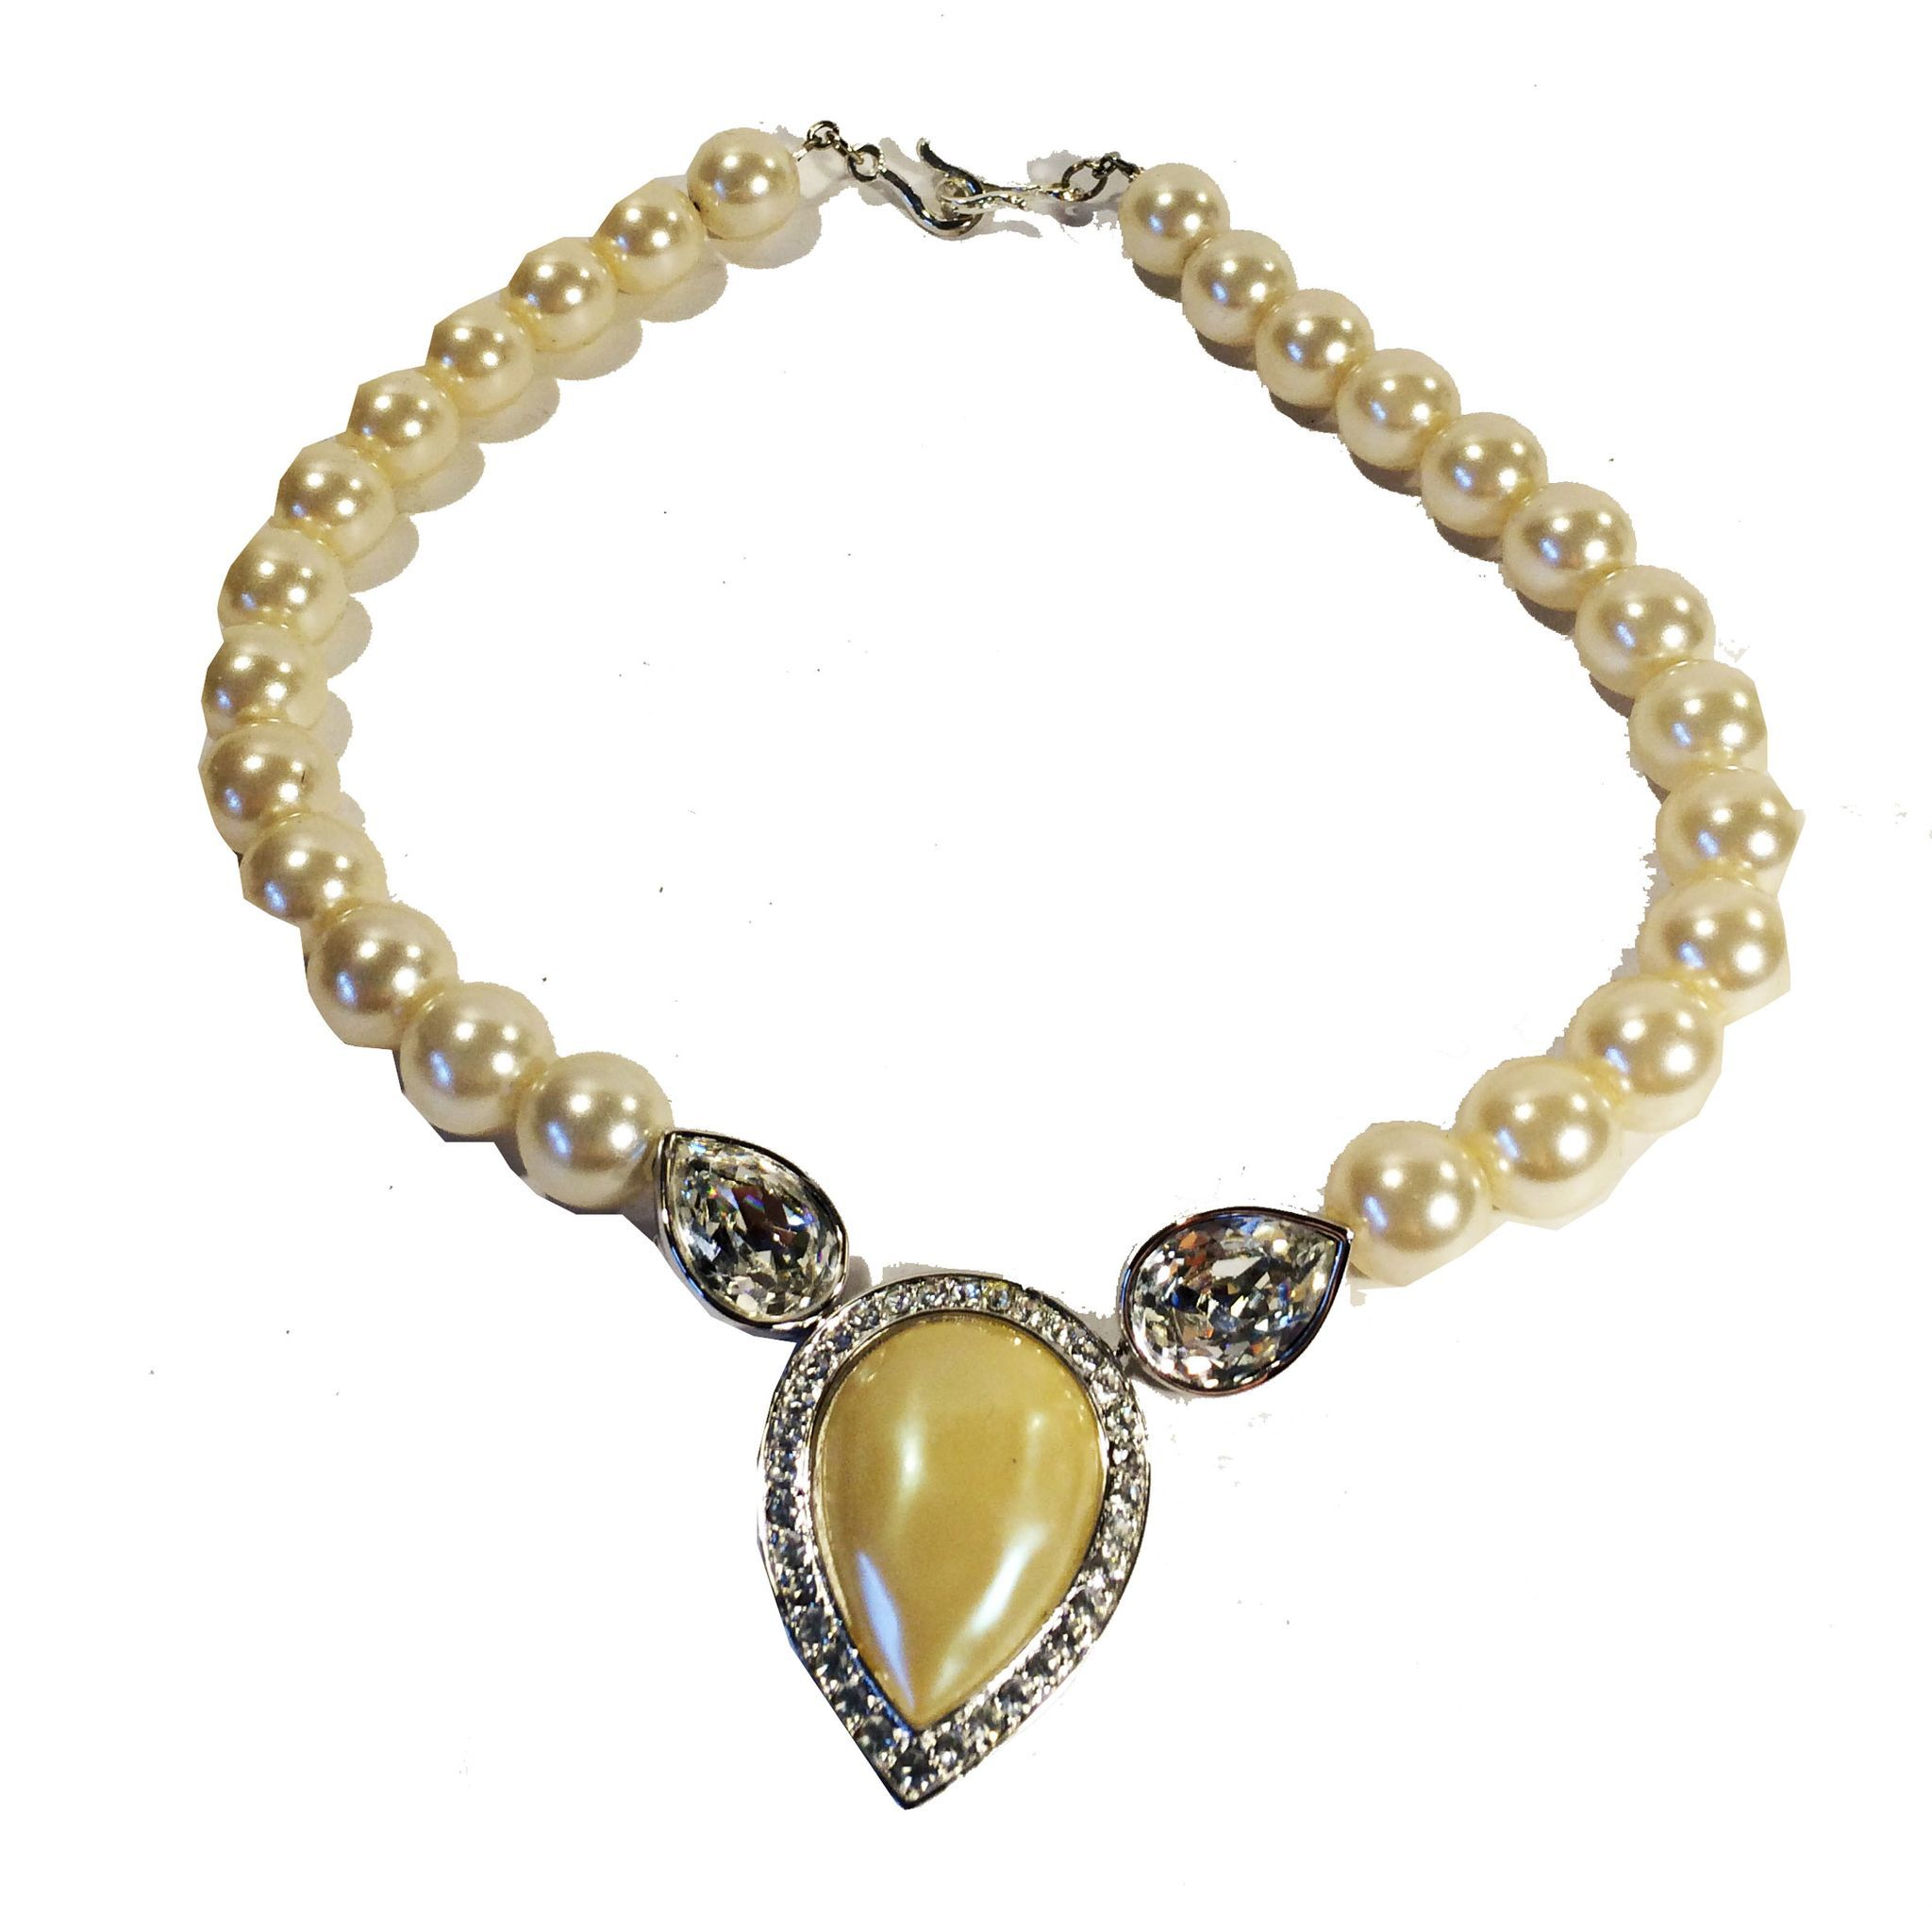 YSL Creamy Round and Baroque Pear Shape Imitation Pearl Necklace with Rhinestone Accents